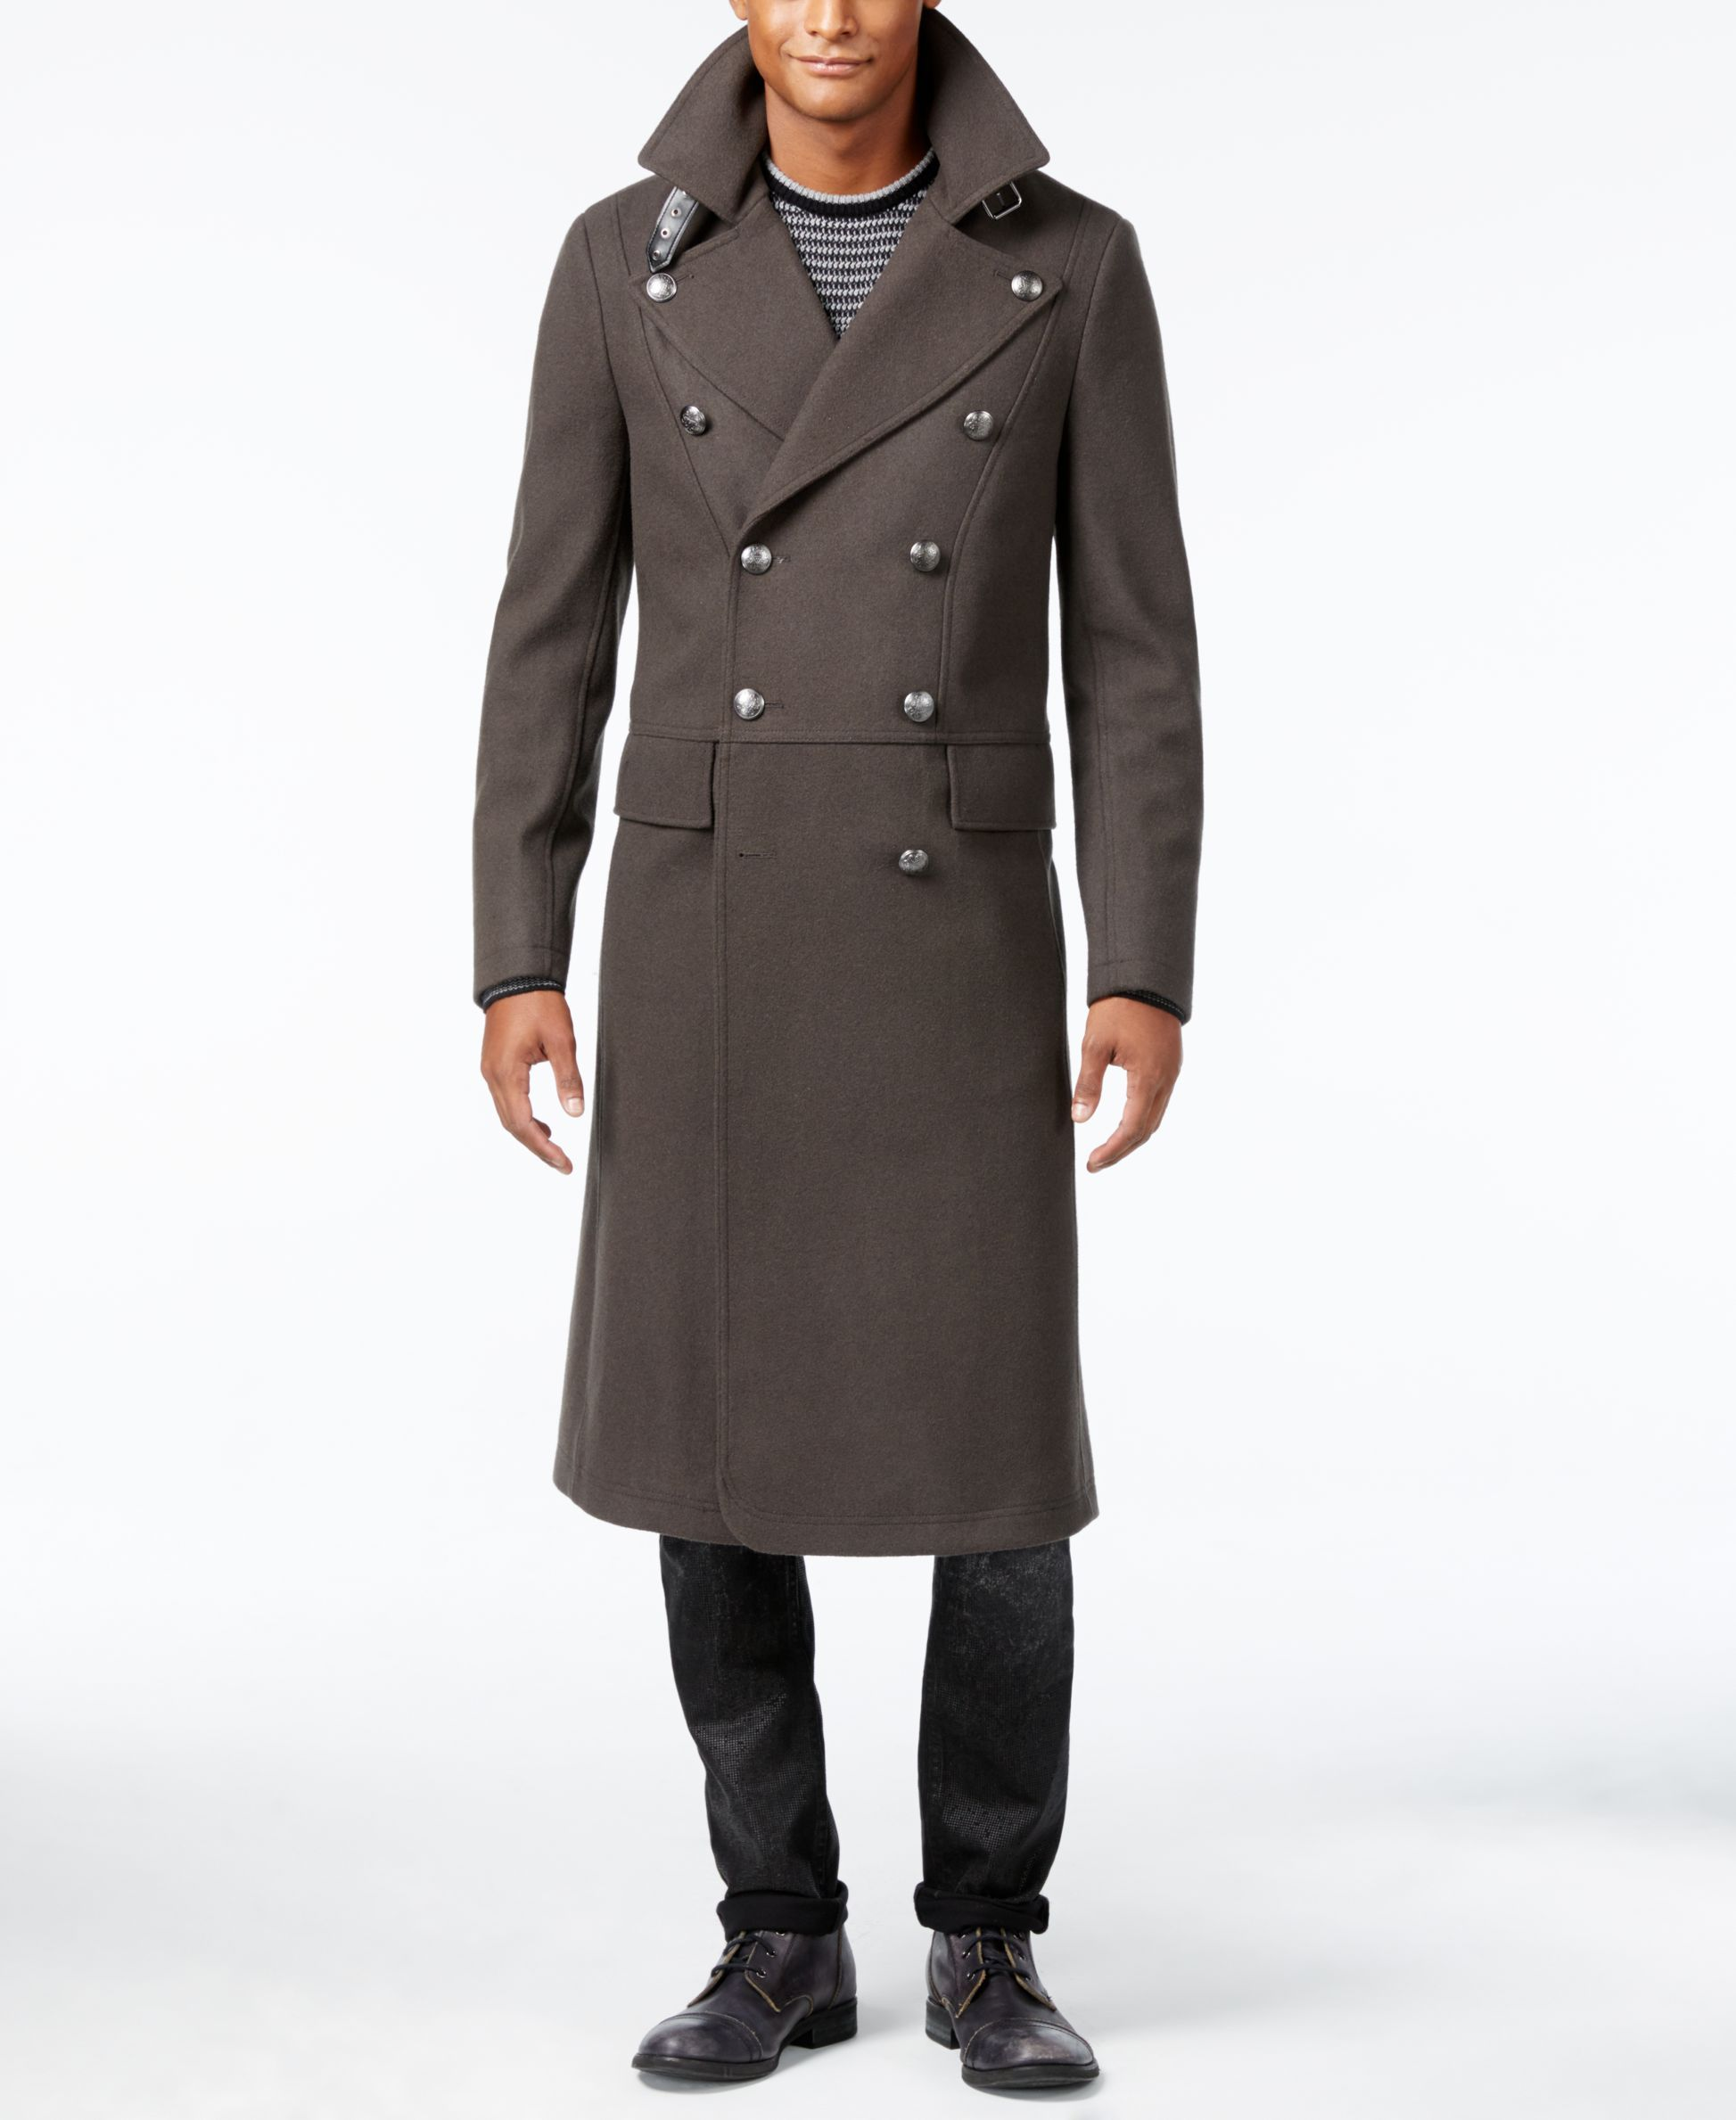 Guess Men S Tomlin Melange Double Breasted Overcoat Double Breasted Overcoat Guess Men Overcoats [ 2378 x 1947 Pixel ]